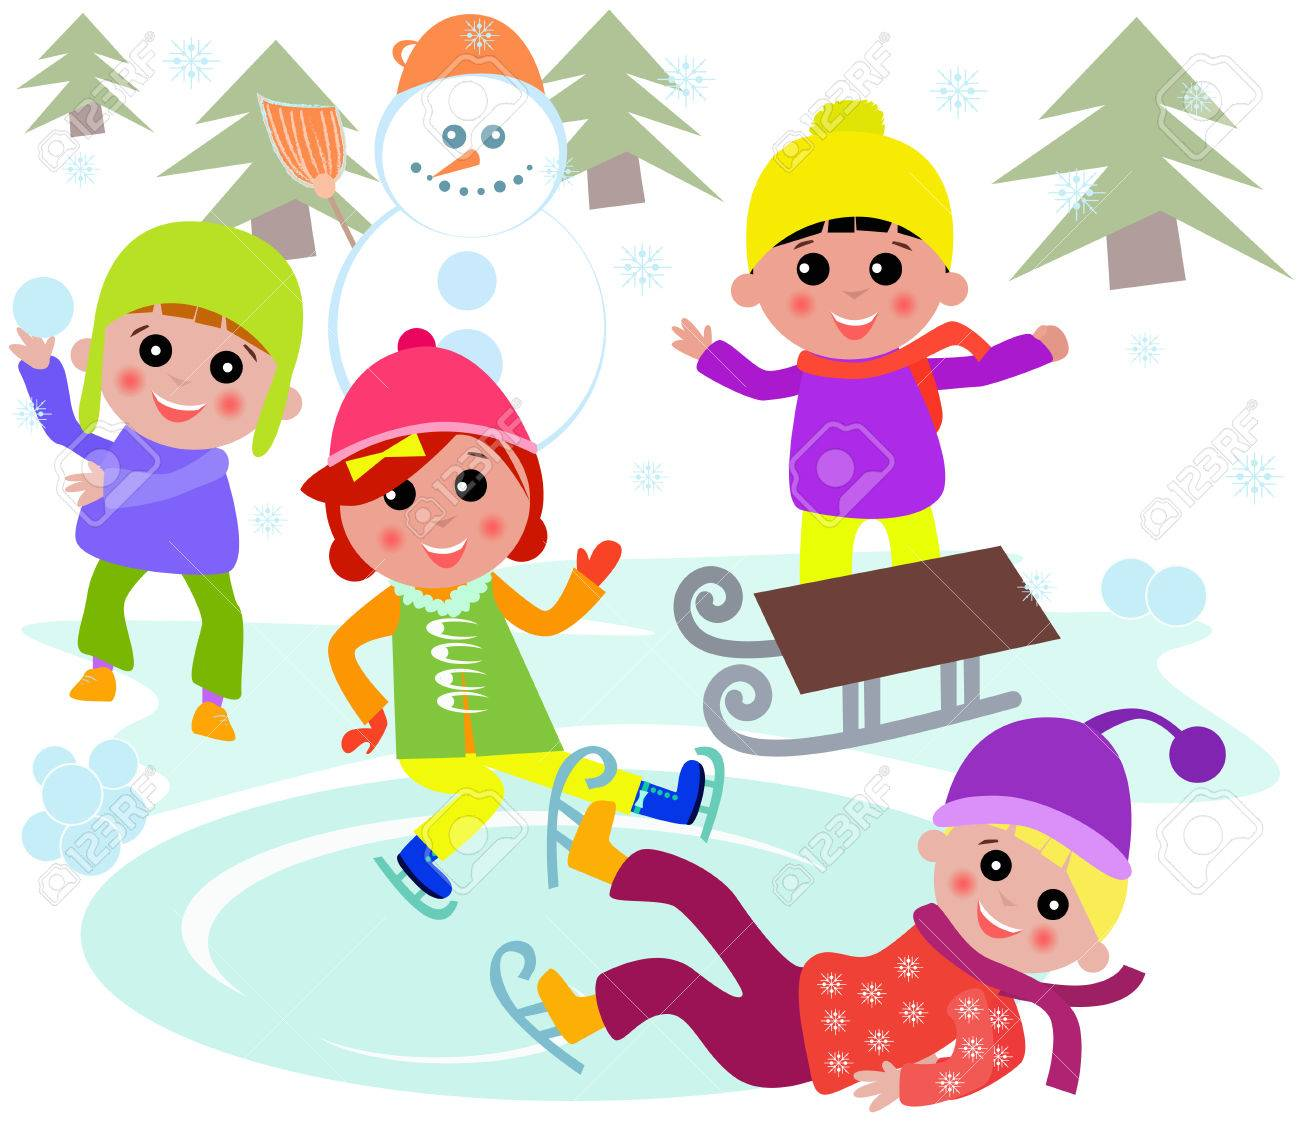 Hiver clipart 4 » Clipart Station.